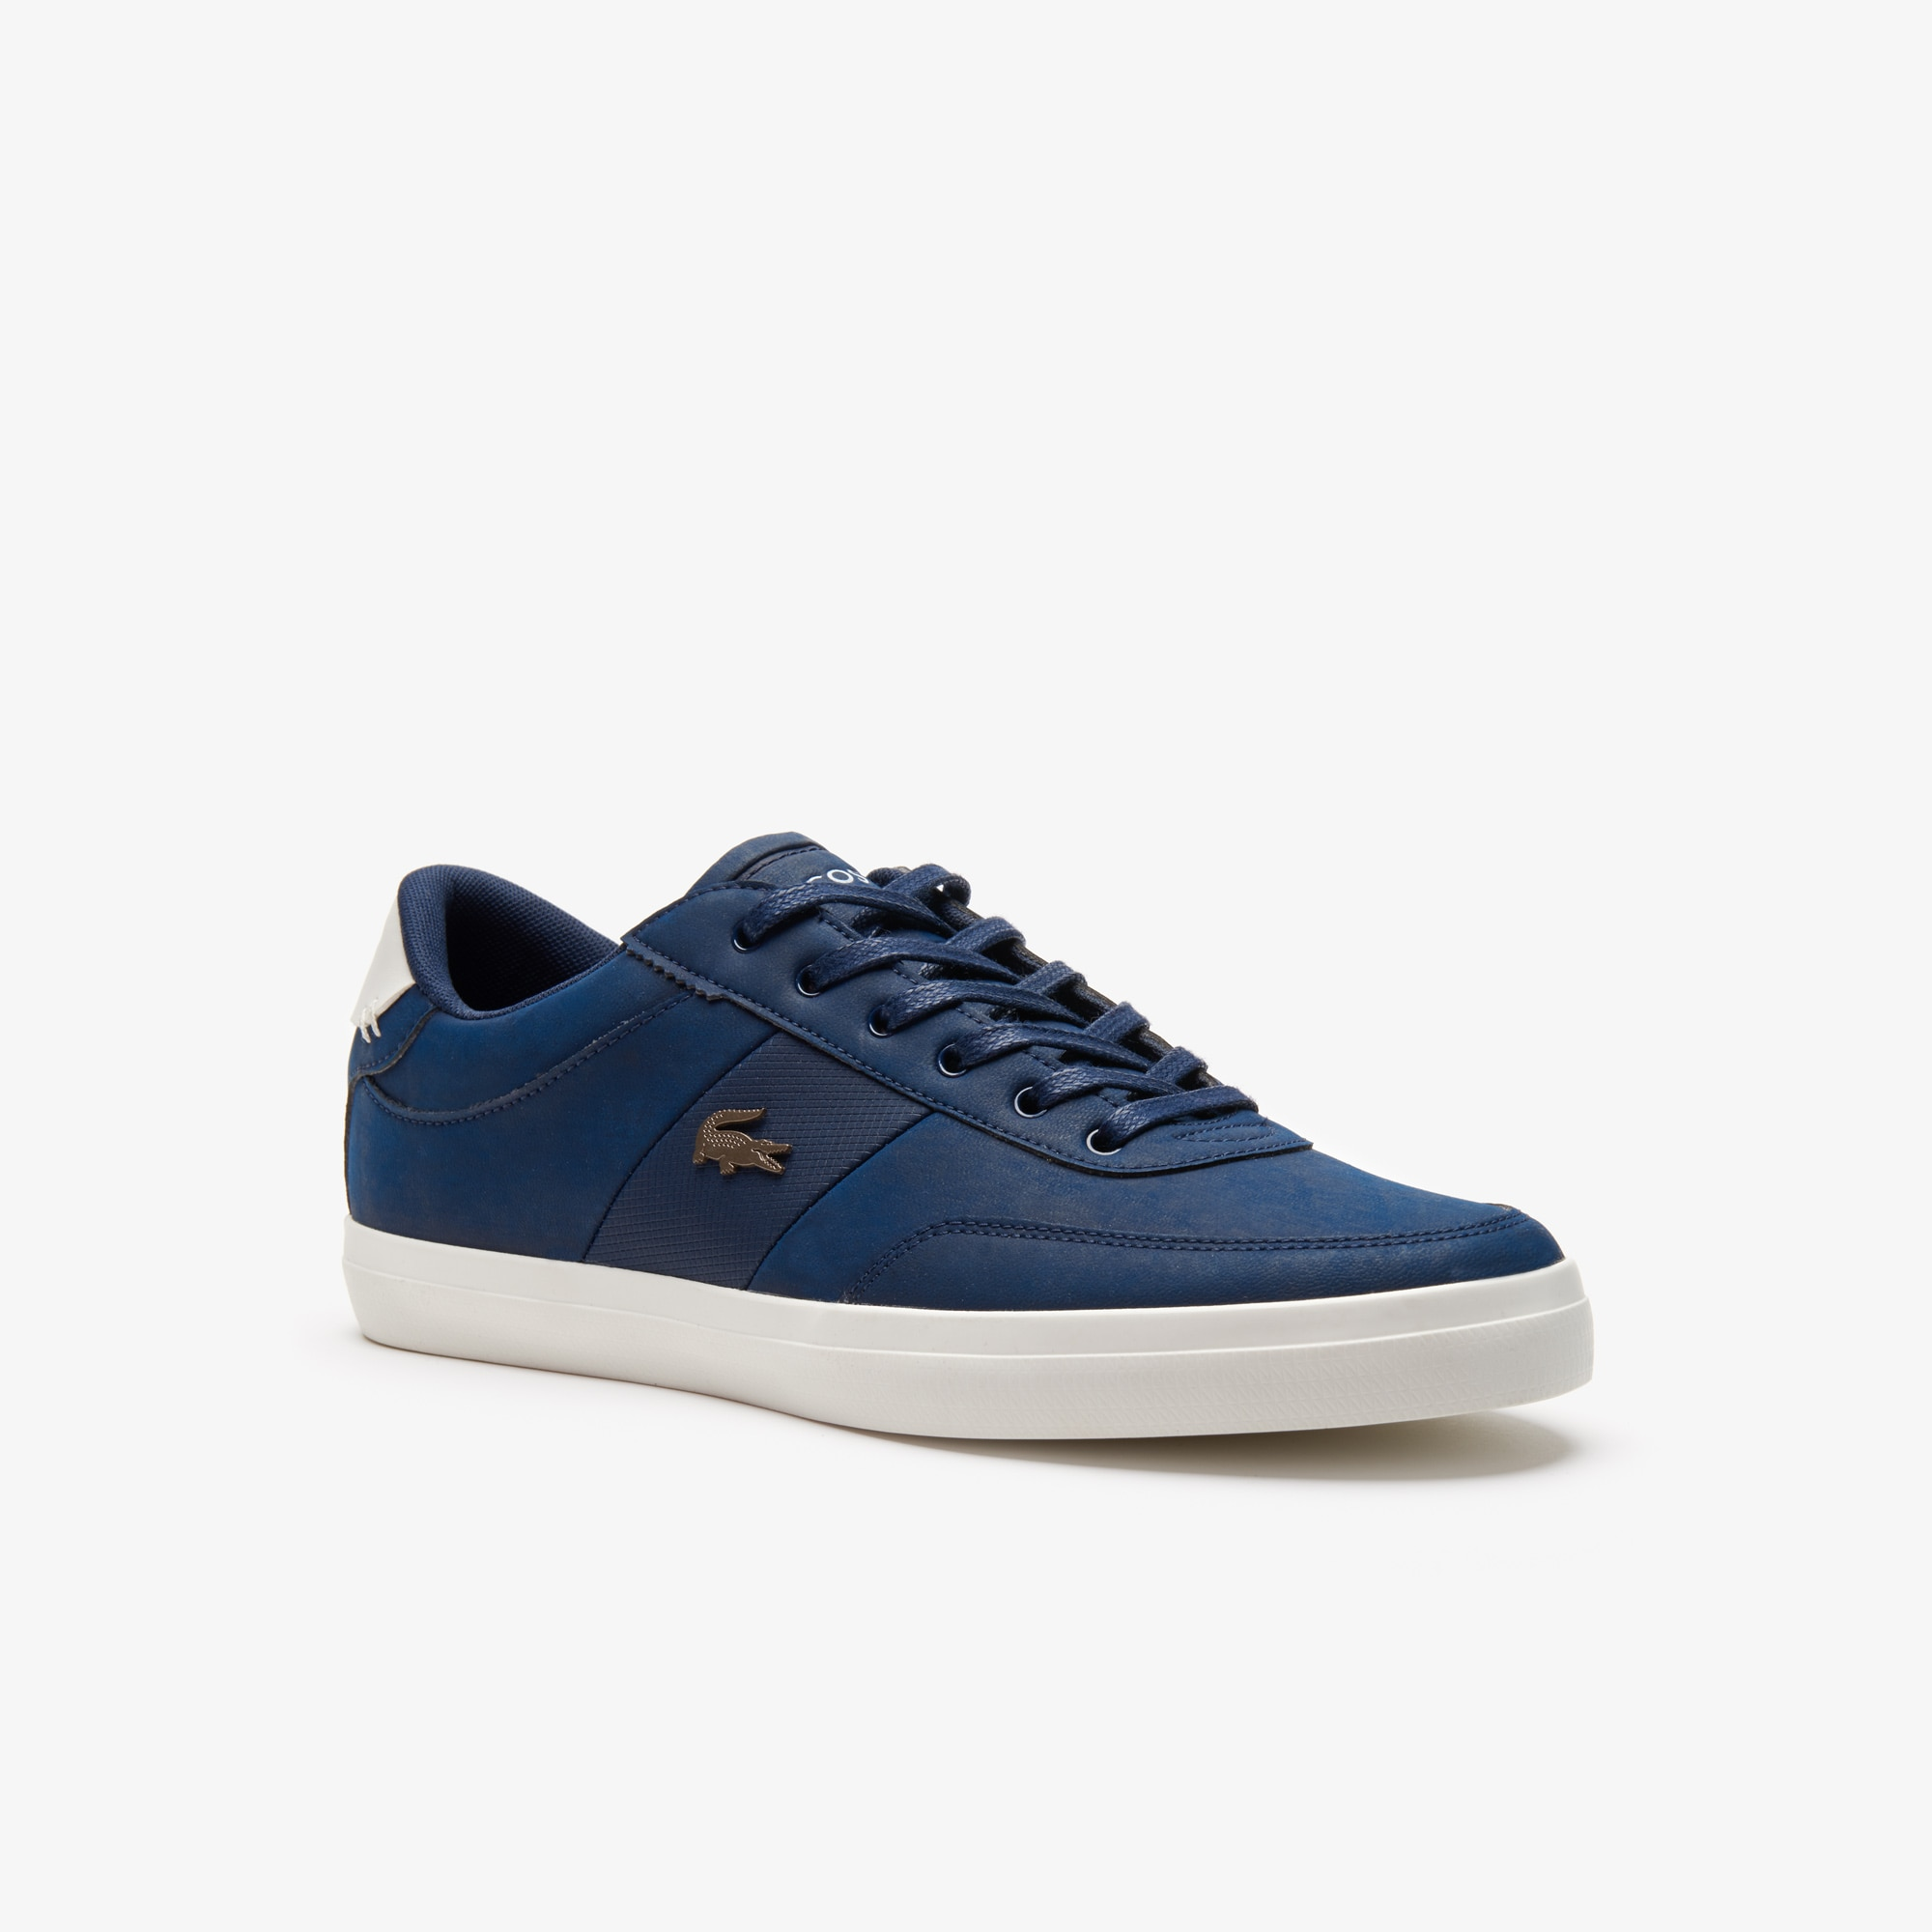 7b73aff38 Lacoste shoes for men: Sneakers, Trainers, Boots | LACOSTE